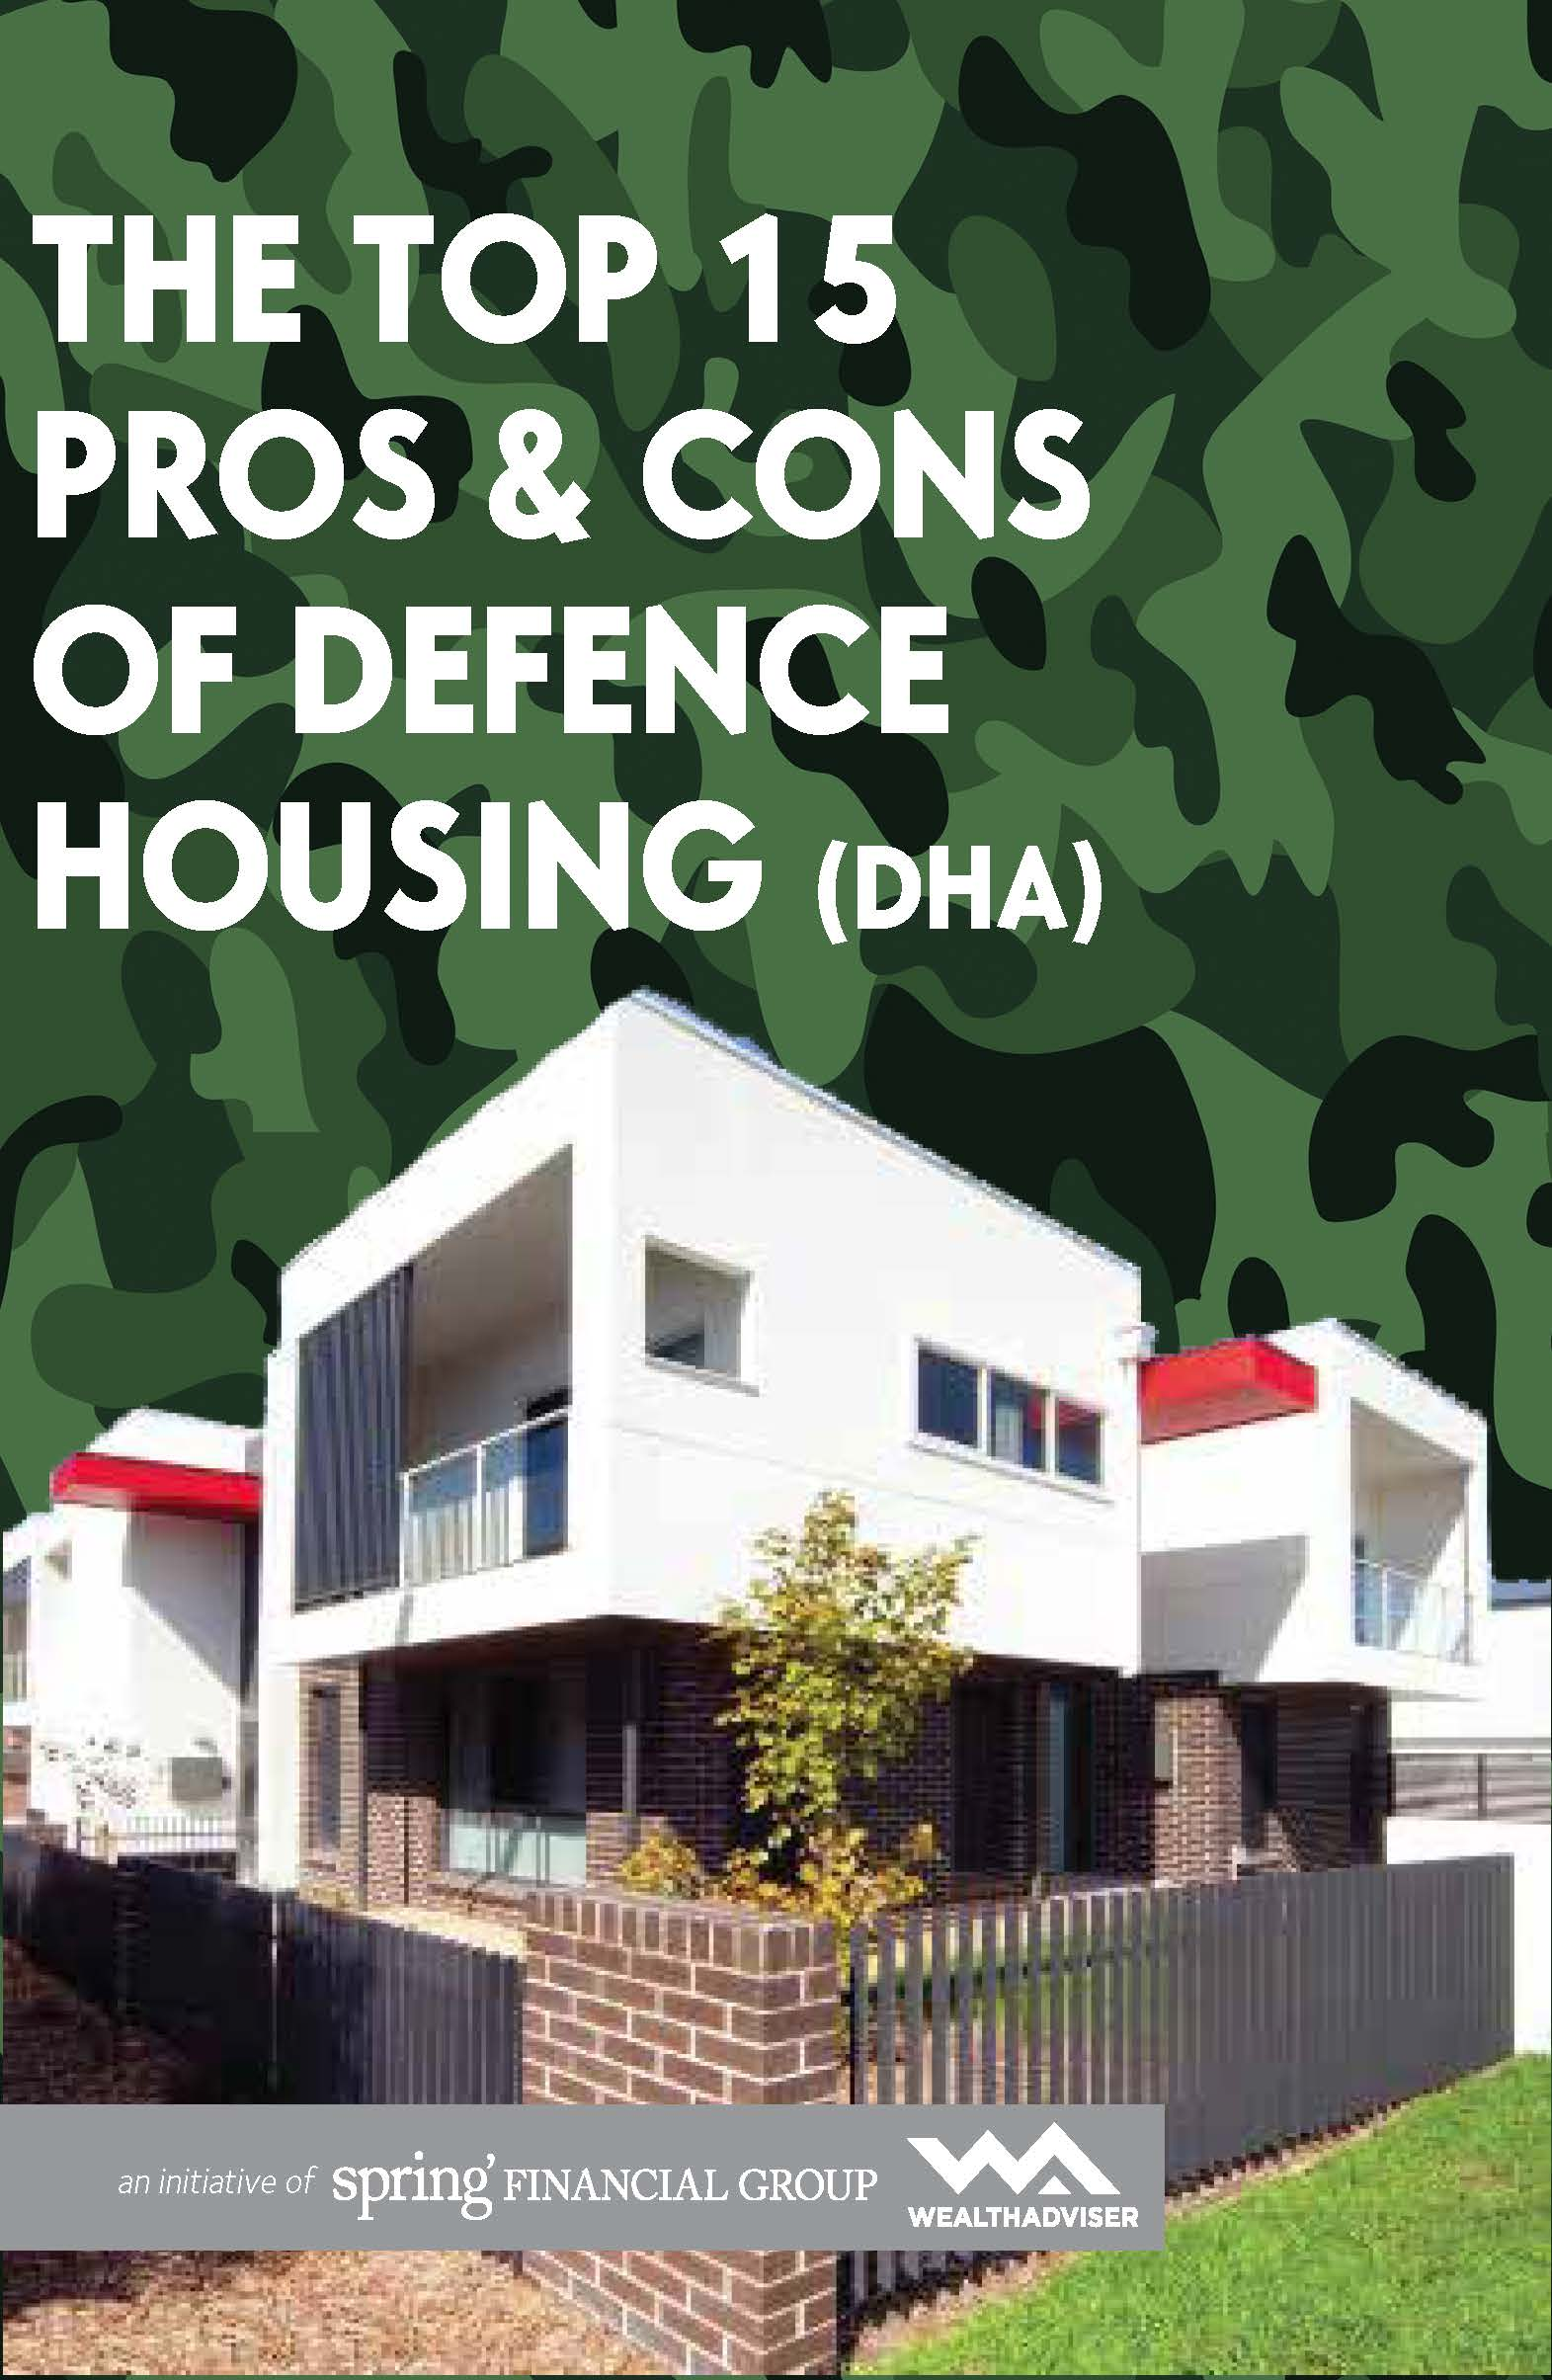 Pros and Cons of Defence Housing (DHA) - Cover